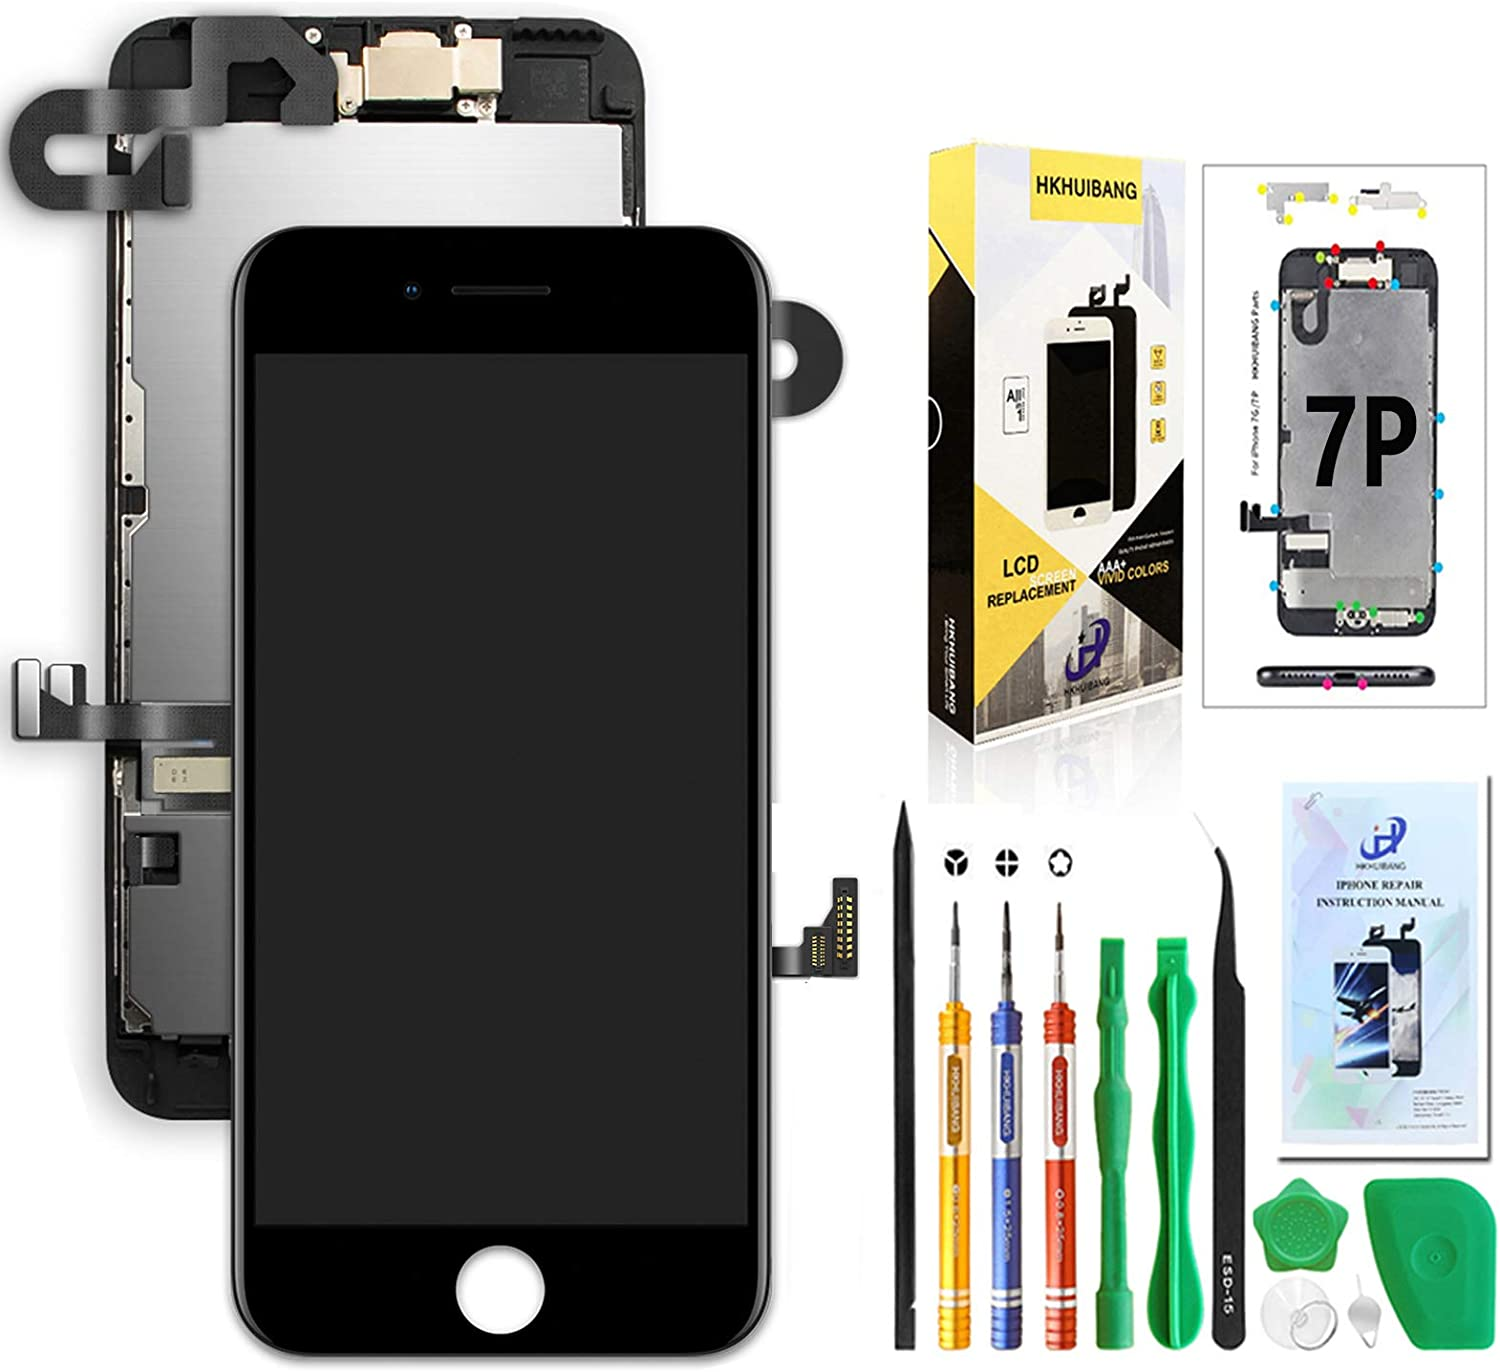 Compatible with iPhone 7 Plus Screen Replacement Black 5.5'',Hkhuibang Pre-Assembled LCD Display 3D Touch Digitizer Full Assembly with OEM Front Camera Proximity Sensor Ear Speaker Repair Tool